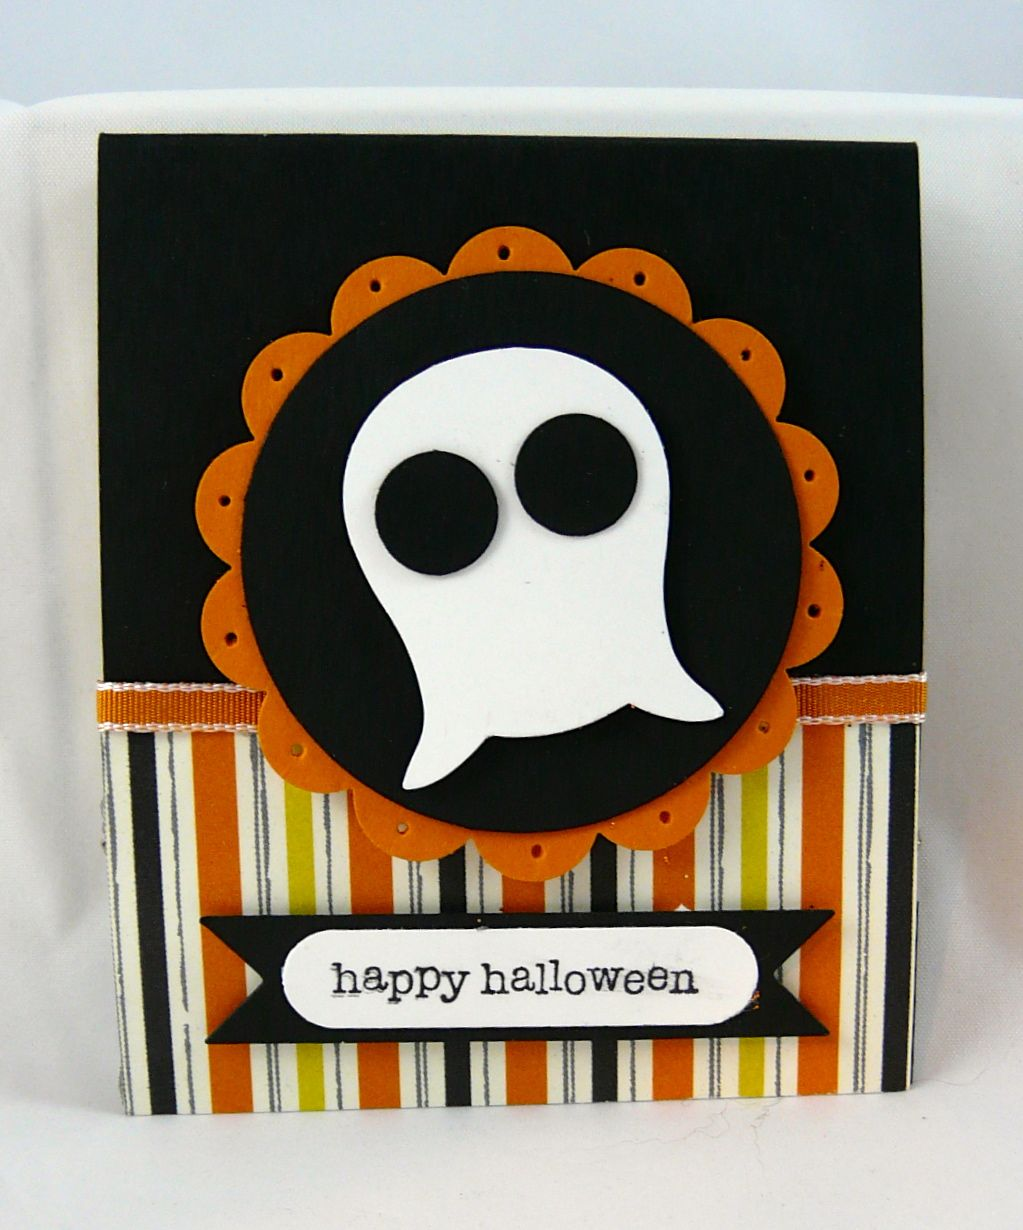 halloween treat holder - Halloween Treat Holders